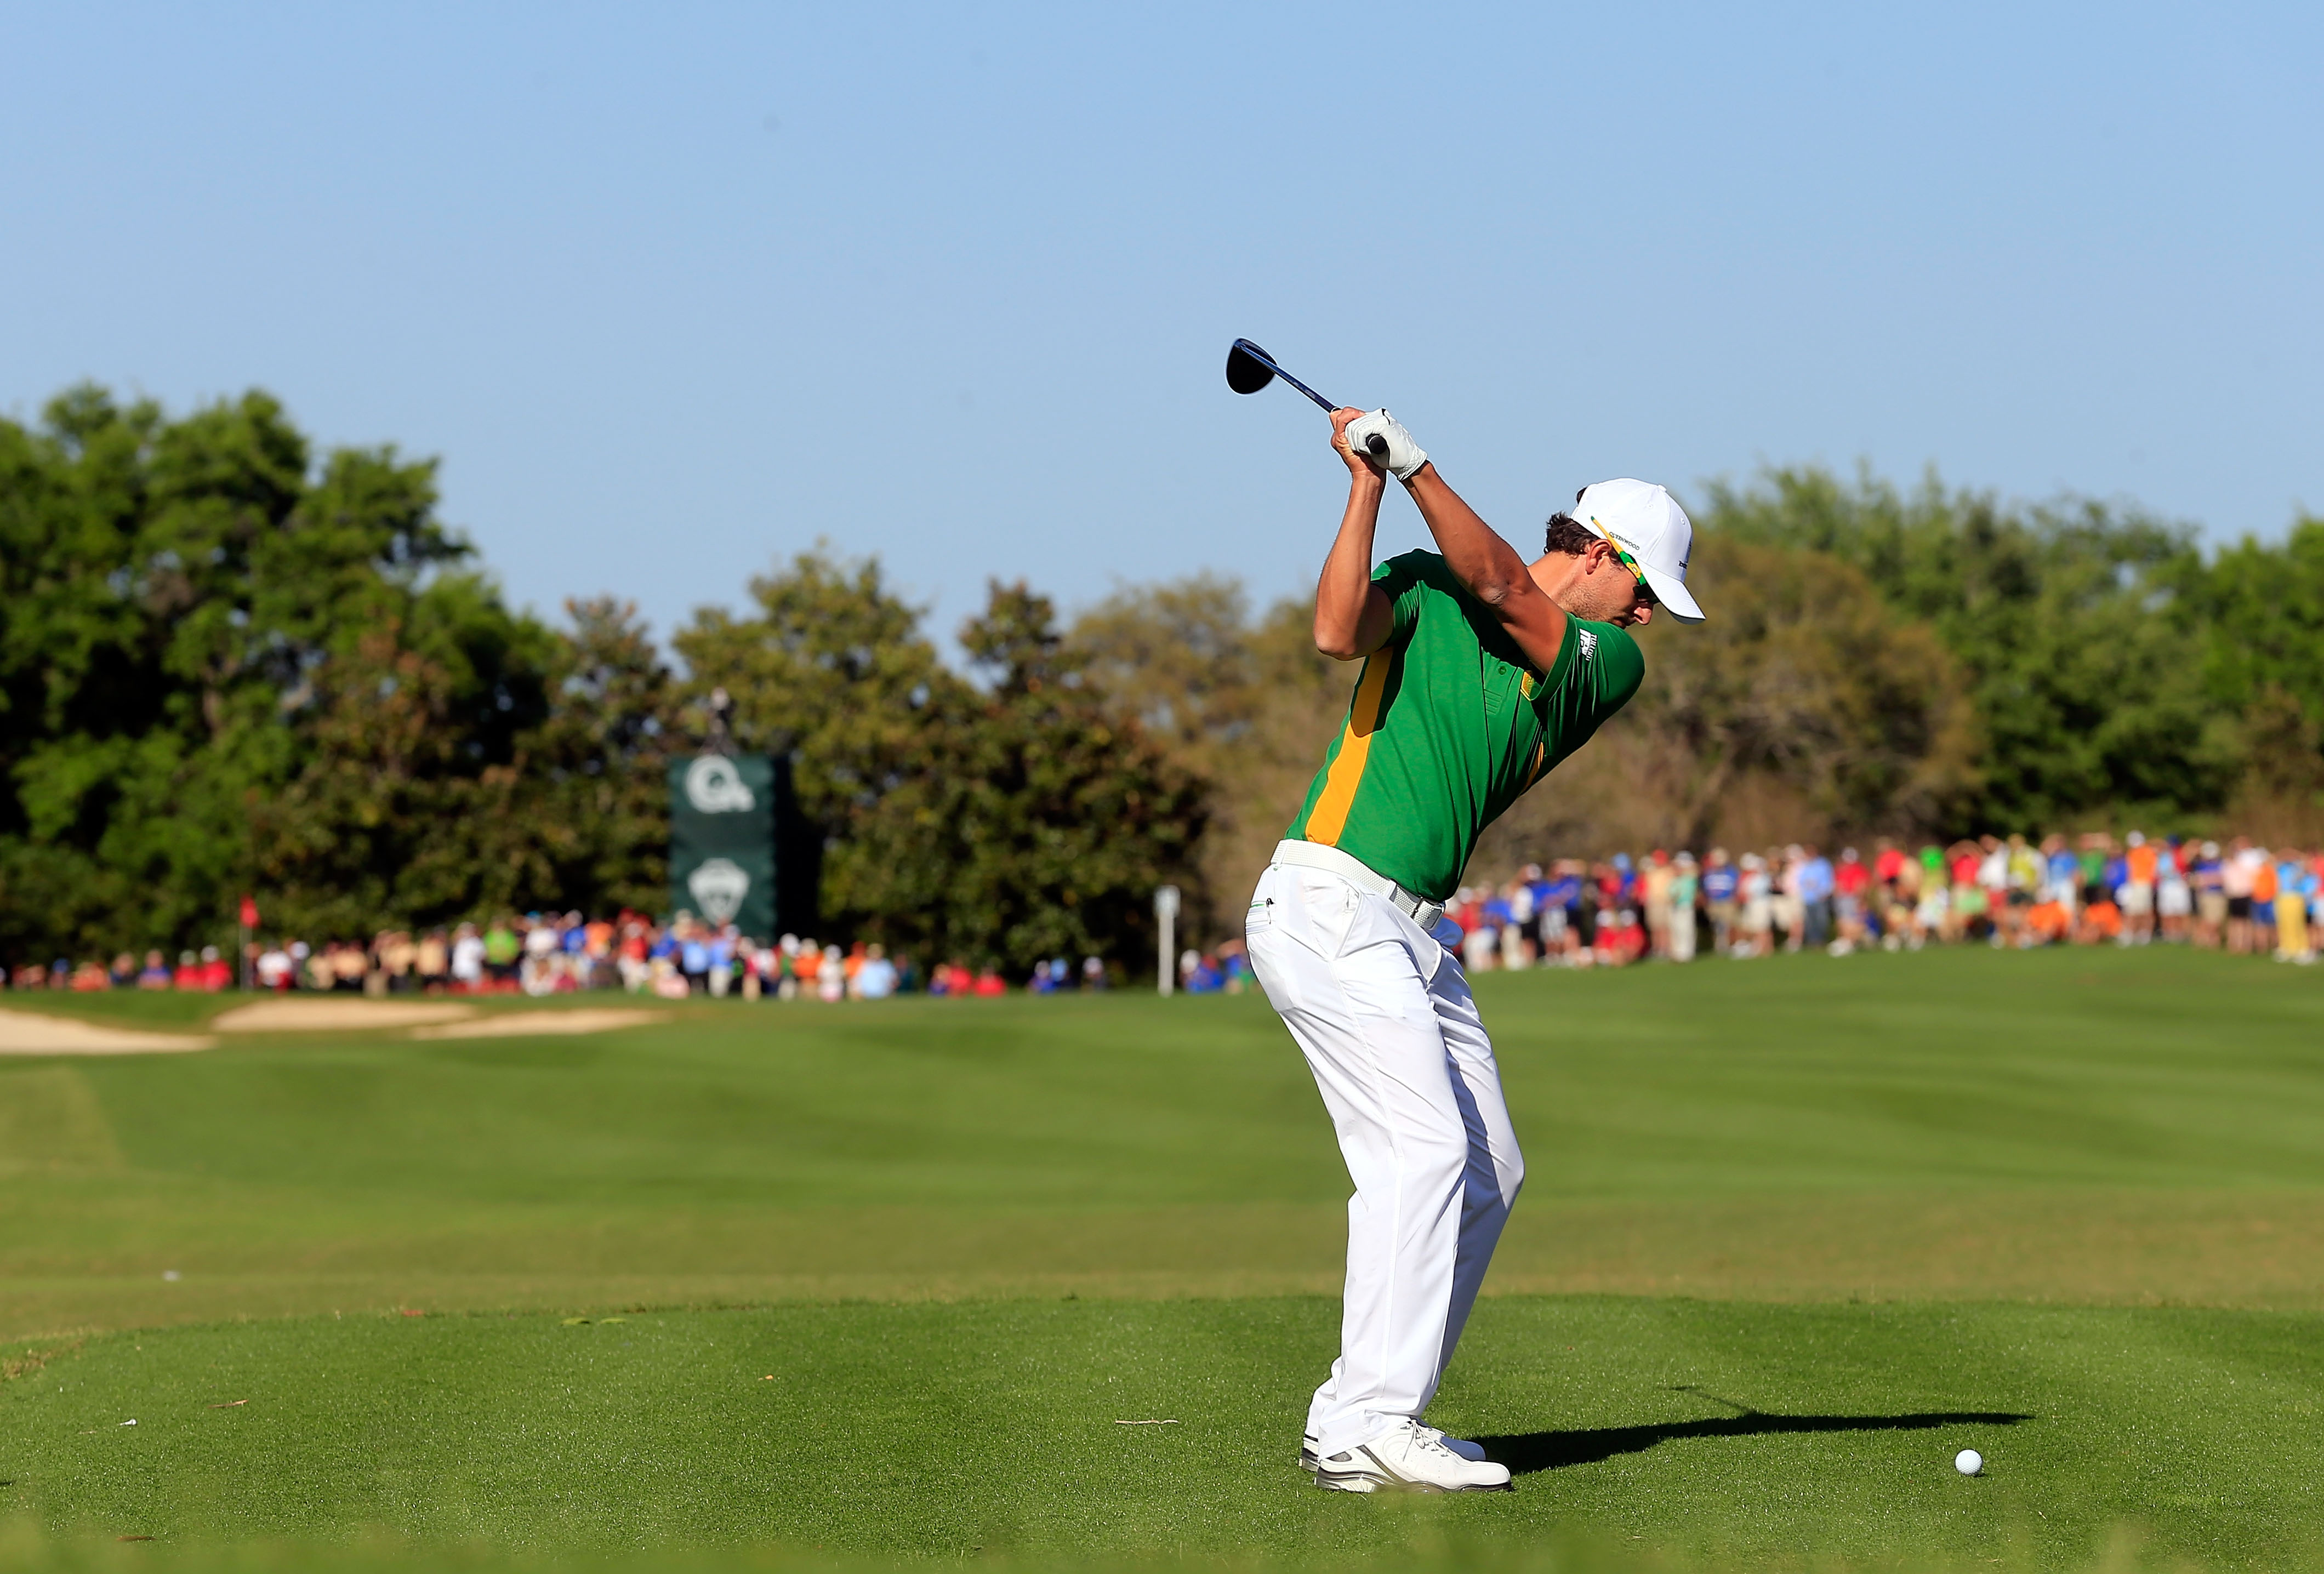 How to Keep the Right Elbow Tucked in the Golf Swing   Golfweek